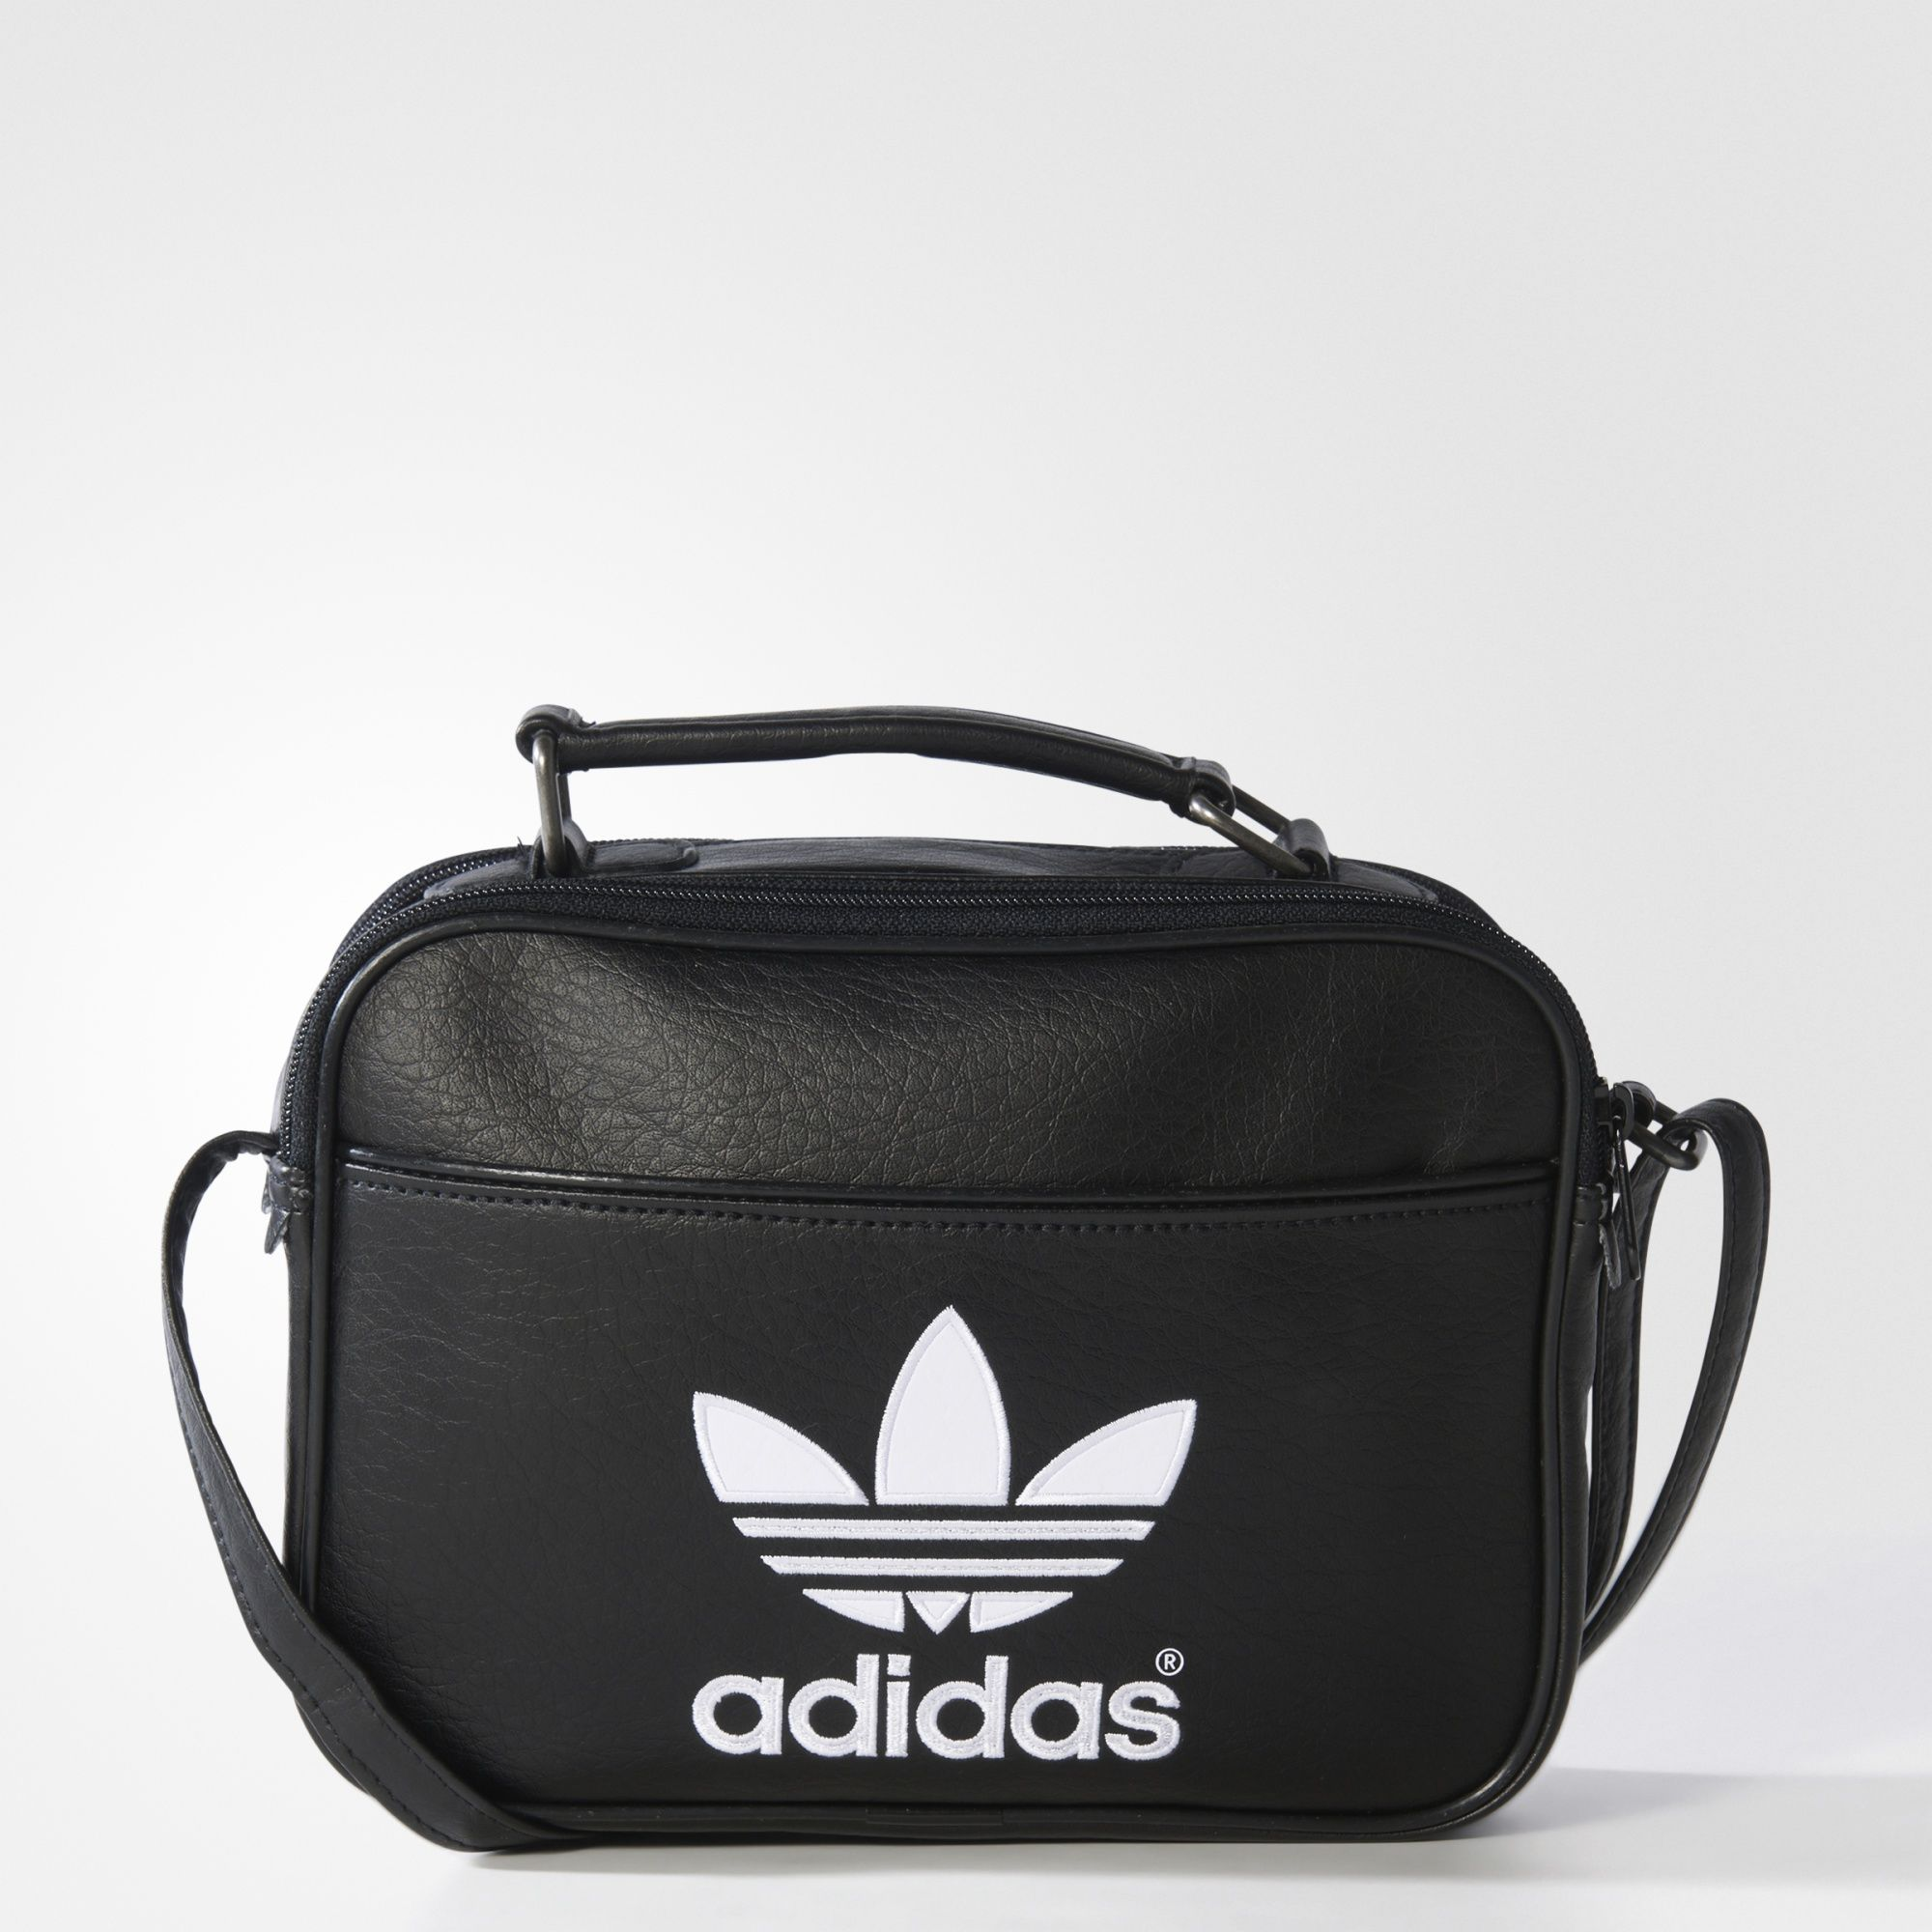 Buy adidas airliner bag pink   OFF72% Discounted 24452ad437